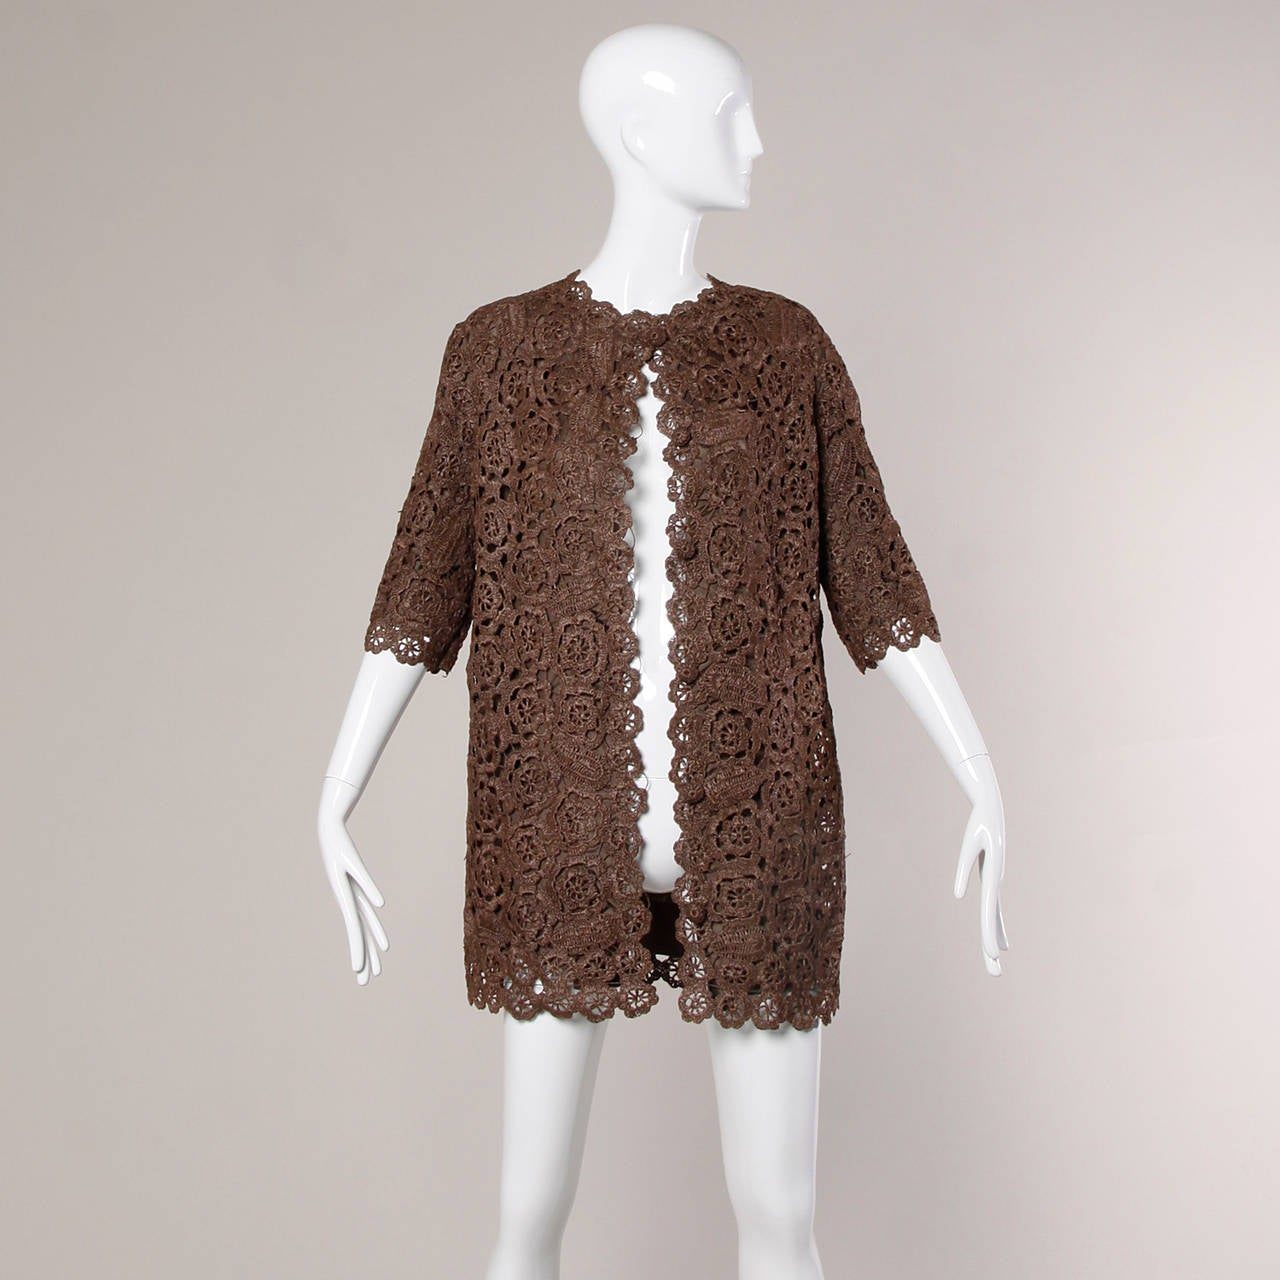 1960s Brown Scalloped Hand Crochet Raffia Lace Jacket or Coat For Sale 2